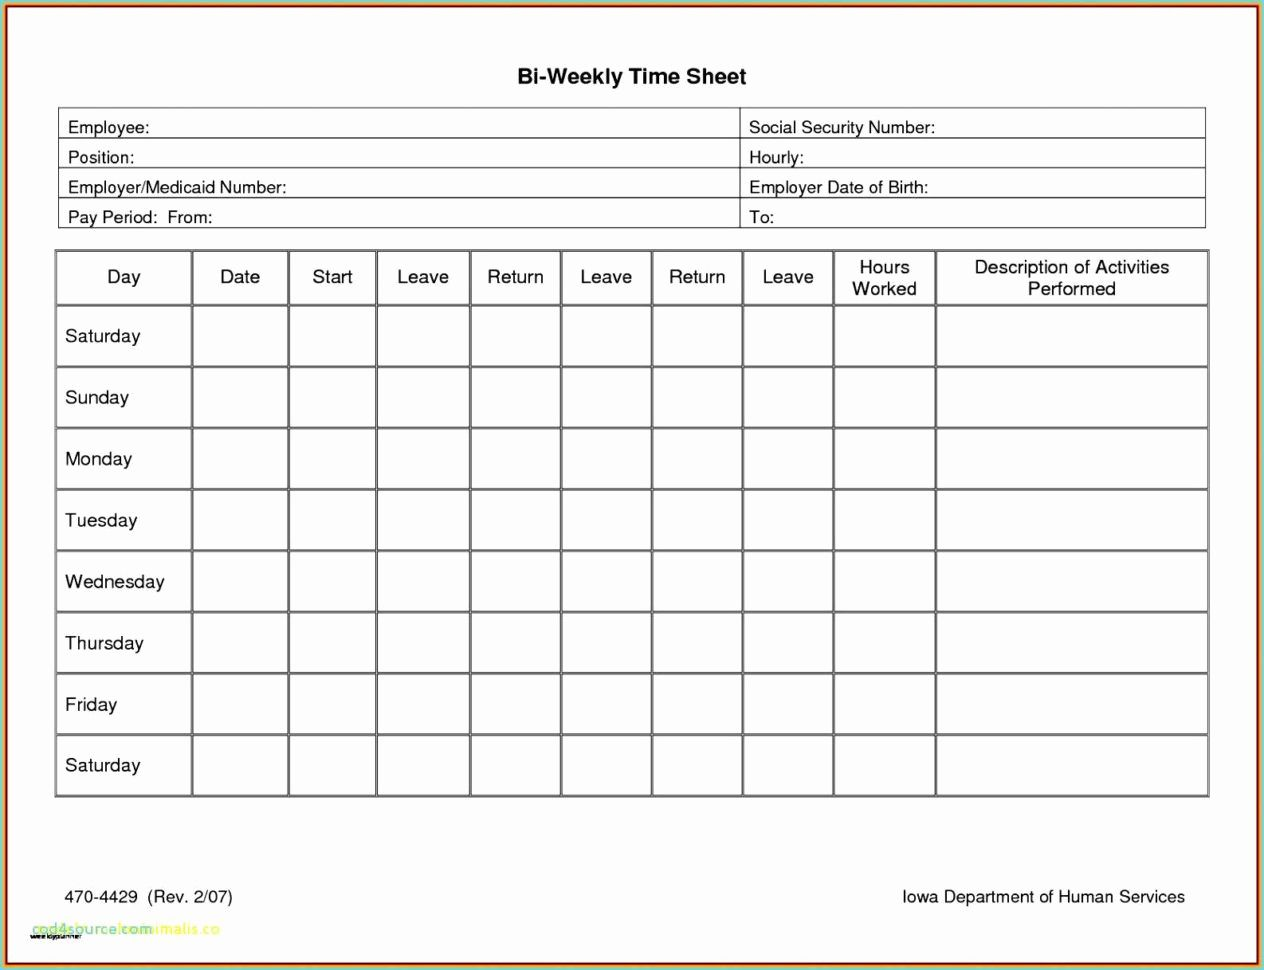 004 Rare Free Biweekly Timesheet Template Photo  Bi Weekly Time Card ExcelFull